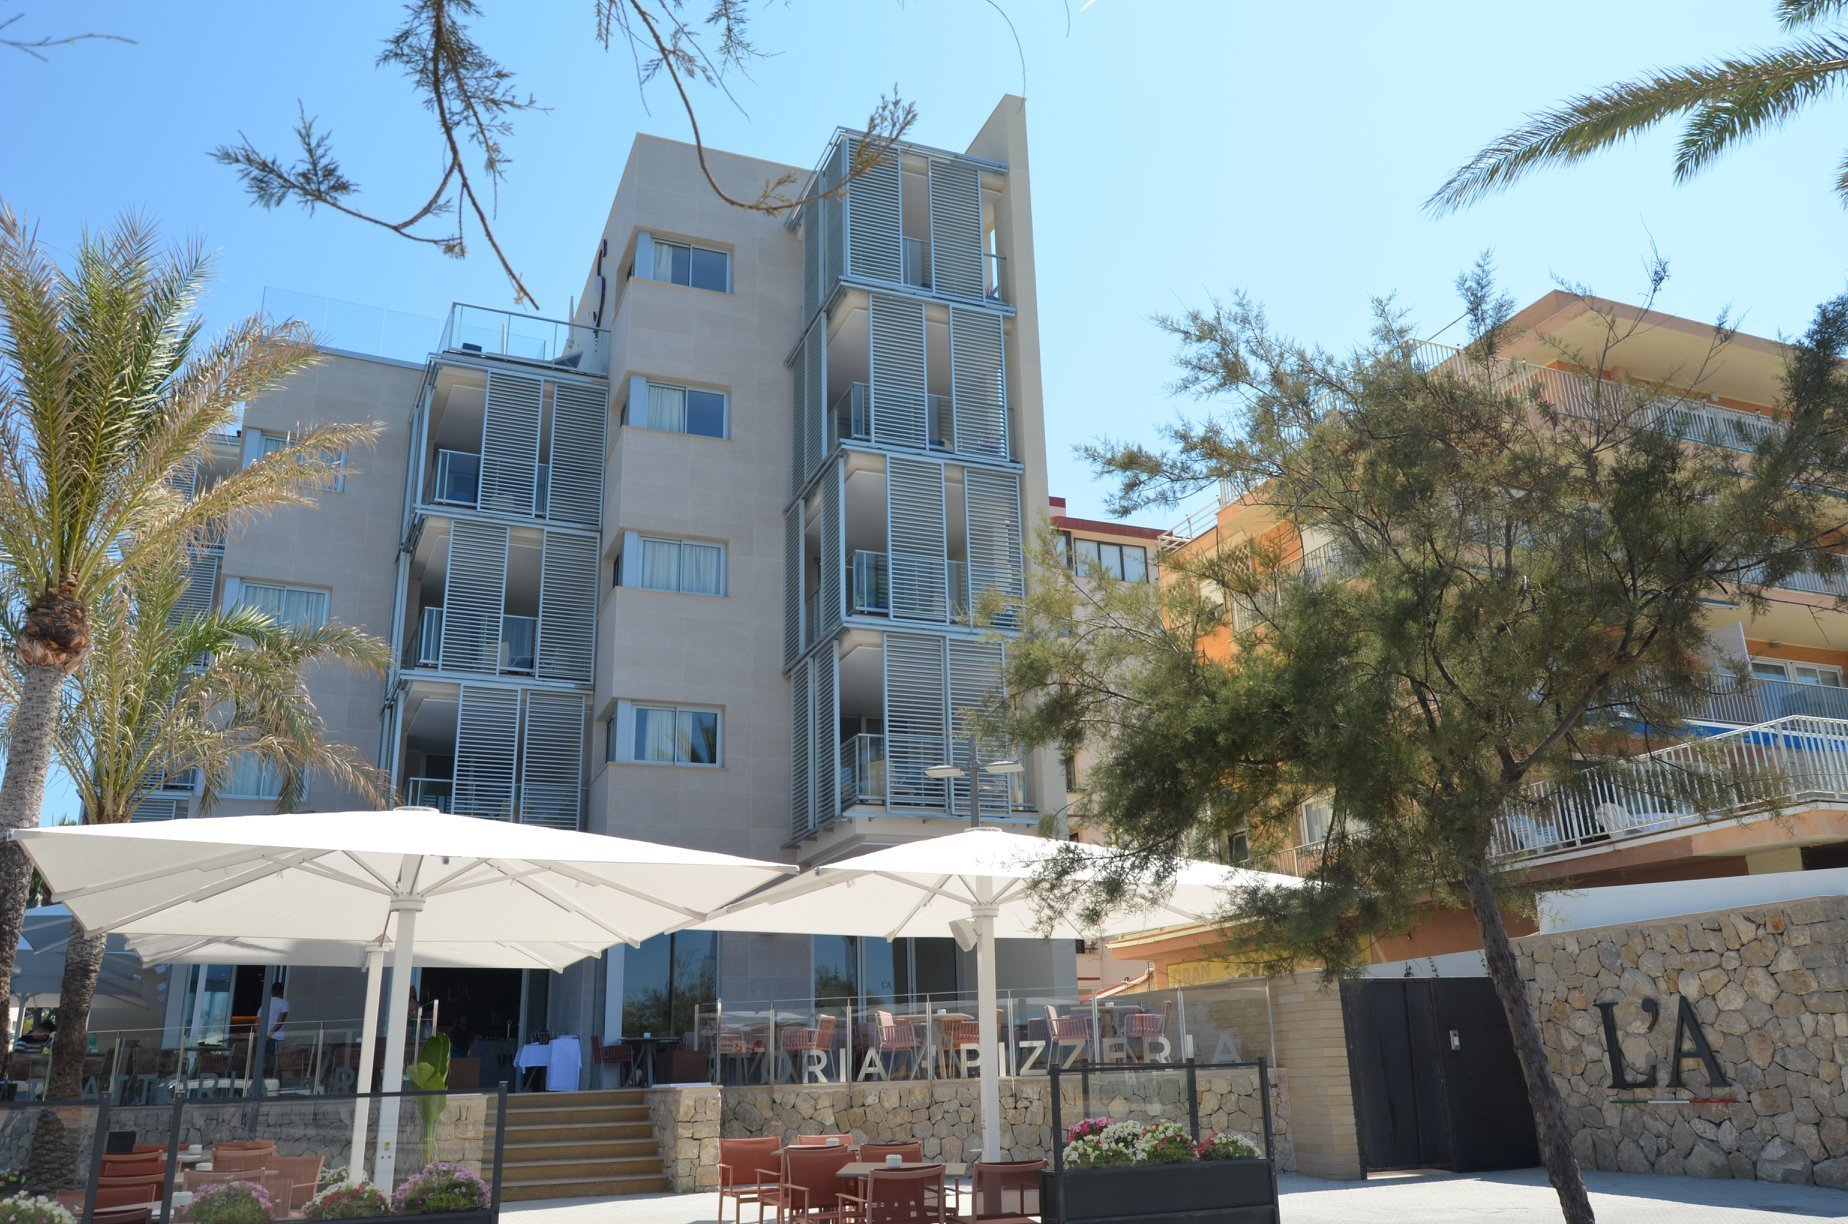 Pure Salt Residences - Outside View - 10% OFF All Rates - PSTONIC